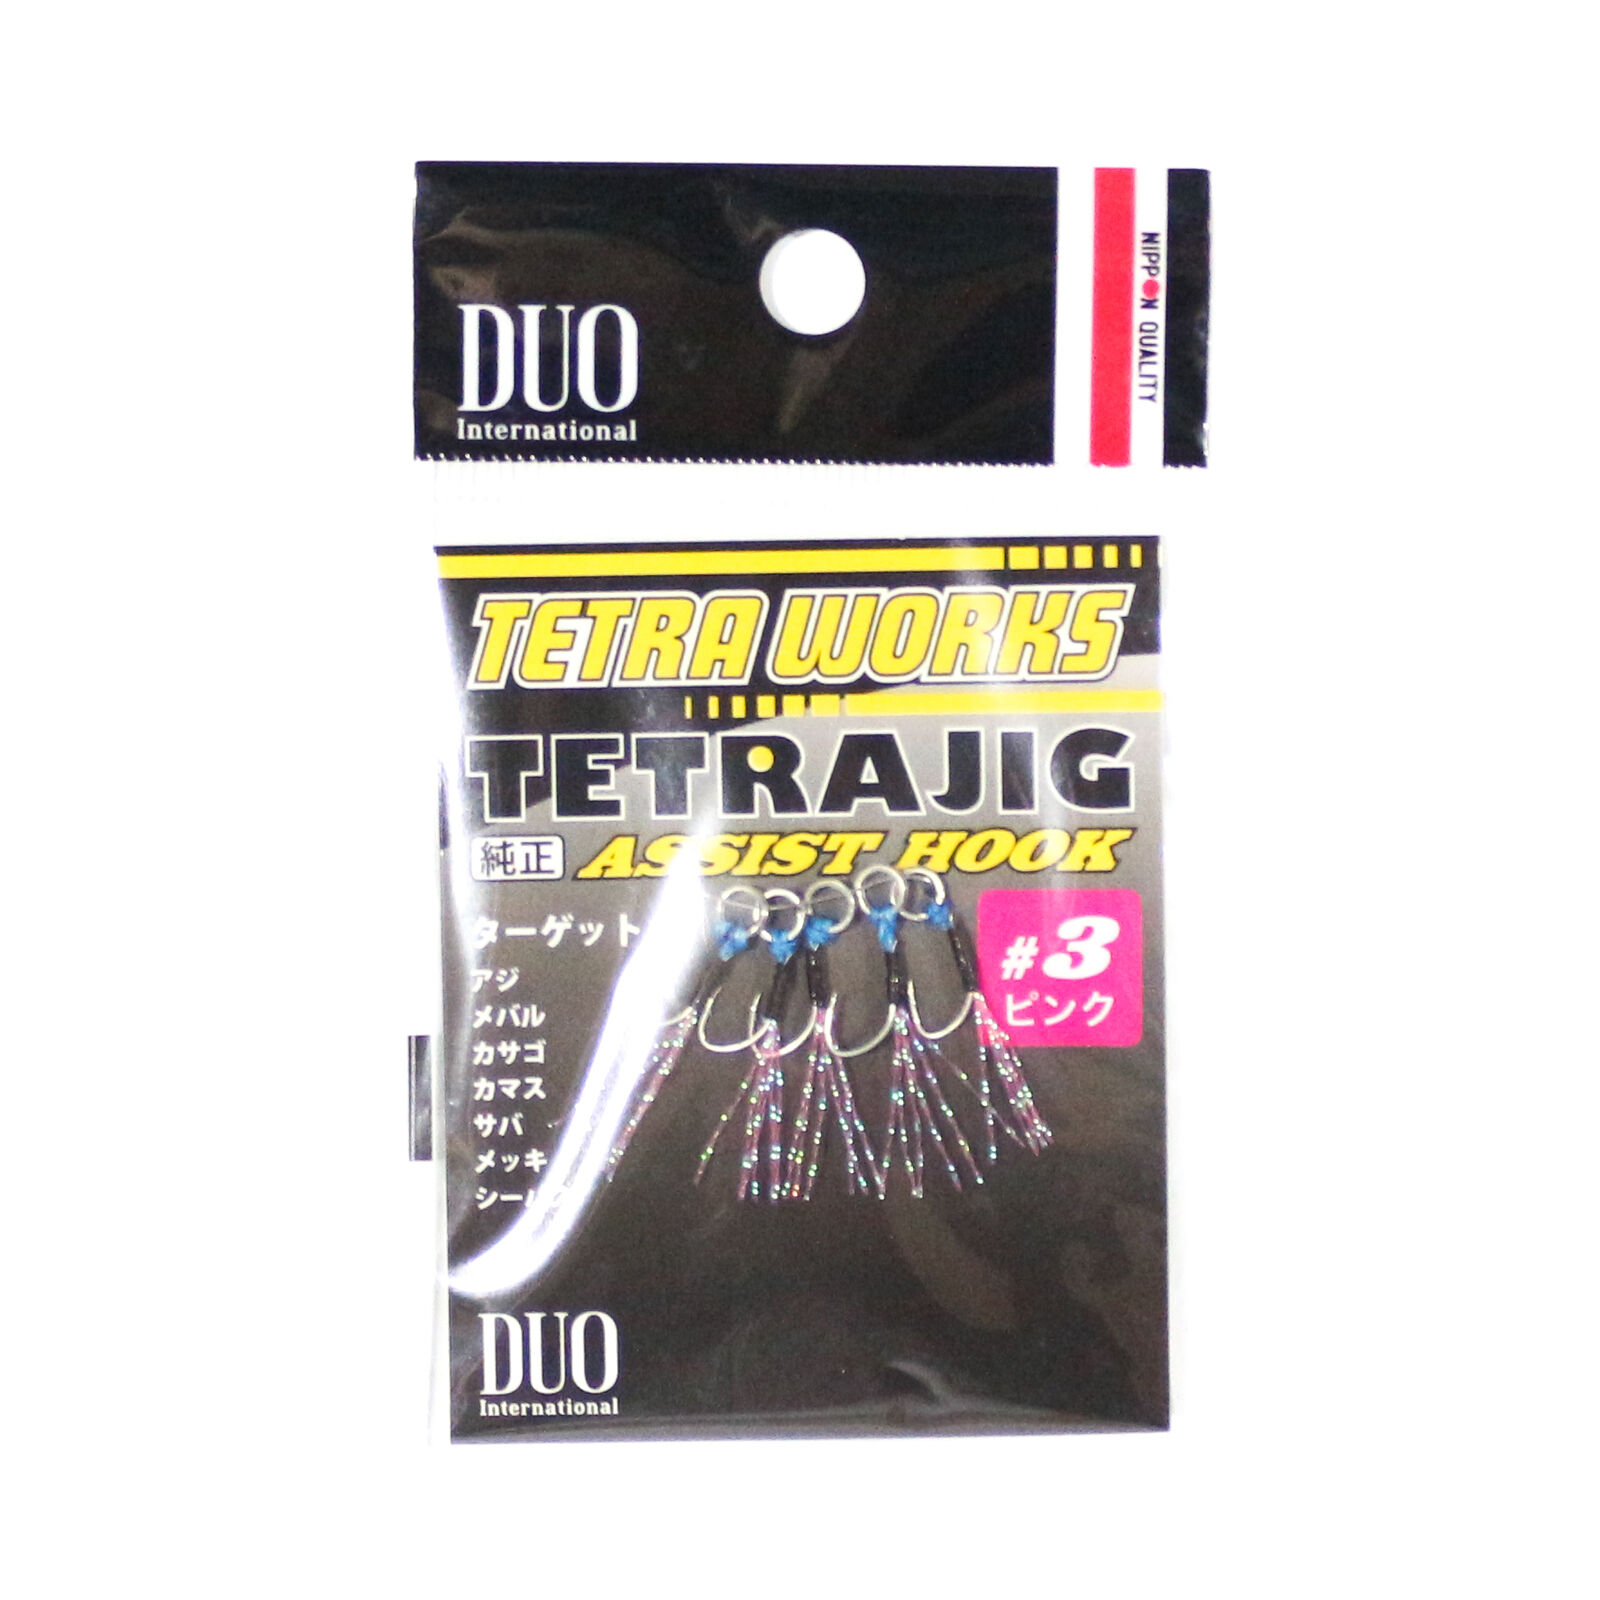 5 piece per pack #7 3361 Duo Assist Hooks Tetra Works Pink Flash Size 7